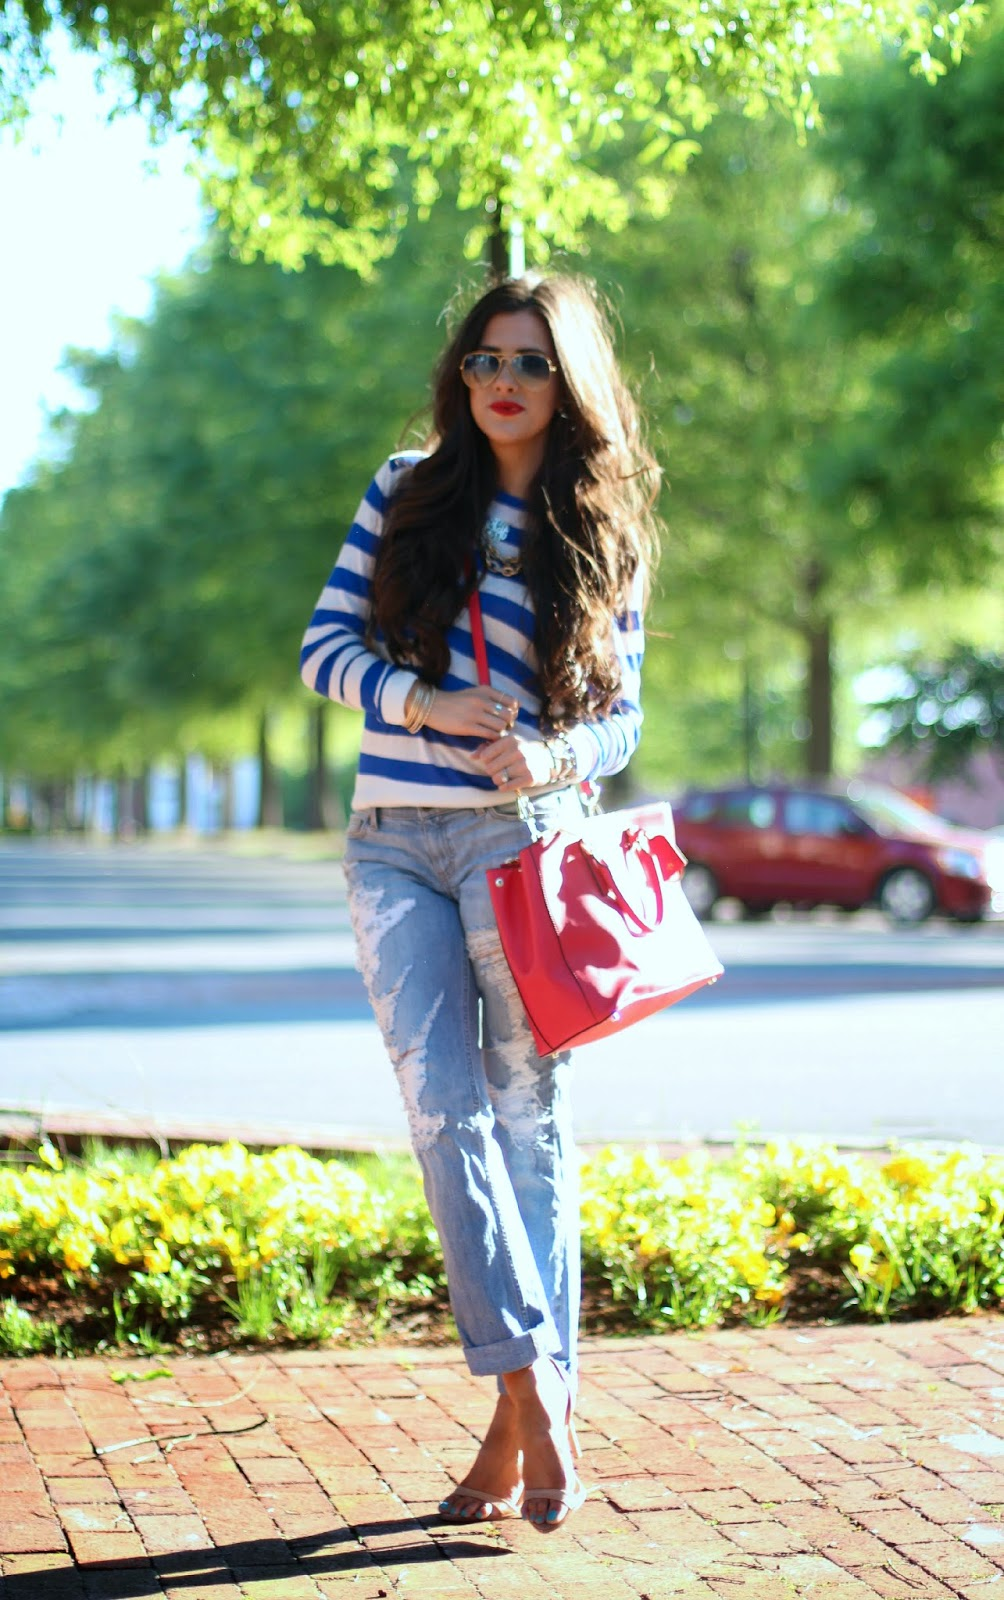 www.TheSweetestthingBlog.com, Emily Gemma, boyfriend jeans, destroyed boyfriend jeans, dittos boyfriend jeans, ripped boyfriend jeans, ripped denim, nordstrom ripped denim, striped sweater, spring sweathers, rayban aviators, tory burch handbag, red tory burch robinson tote, red tory burch purse, micheal kors runway watch, stila lipstick in beso, nude zara sandals, nude strappy sandals, gold arm party, gold bangles, red lips, long hair for brunettes, bellami hair extension, mocha chino hair extensions, summer fashion 2014, pinterest summer outfits 2014, how to wear boyfriend jeans in summer, how to wear boyfriend jeans with sweaters, love always couture monogram necklace